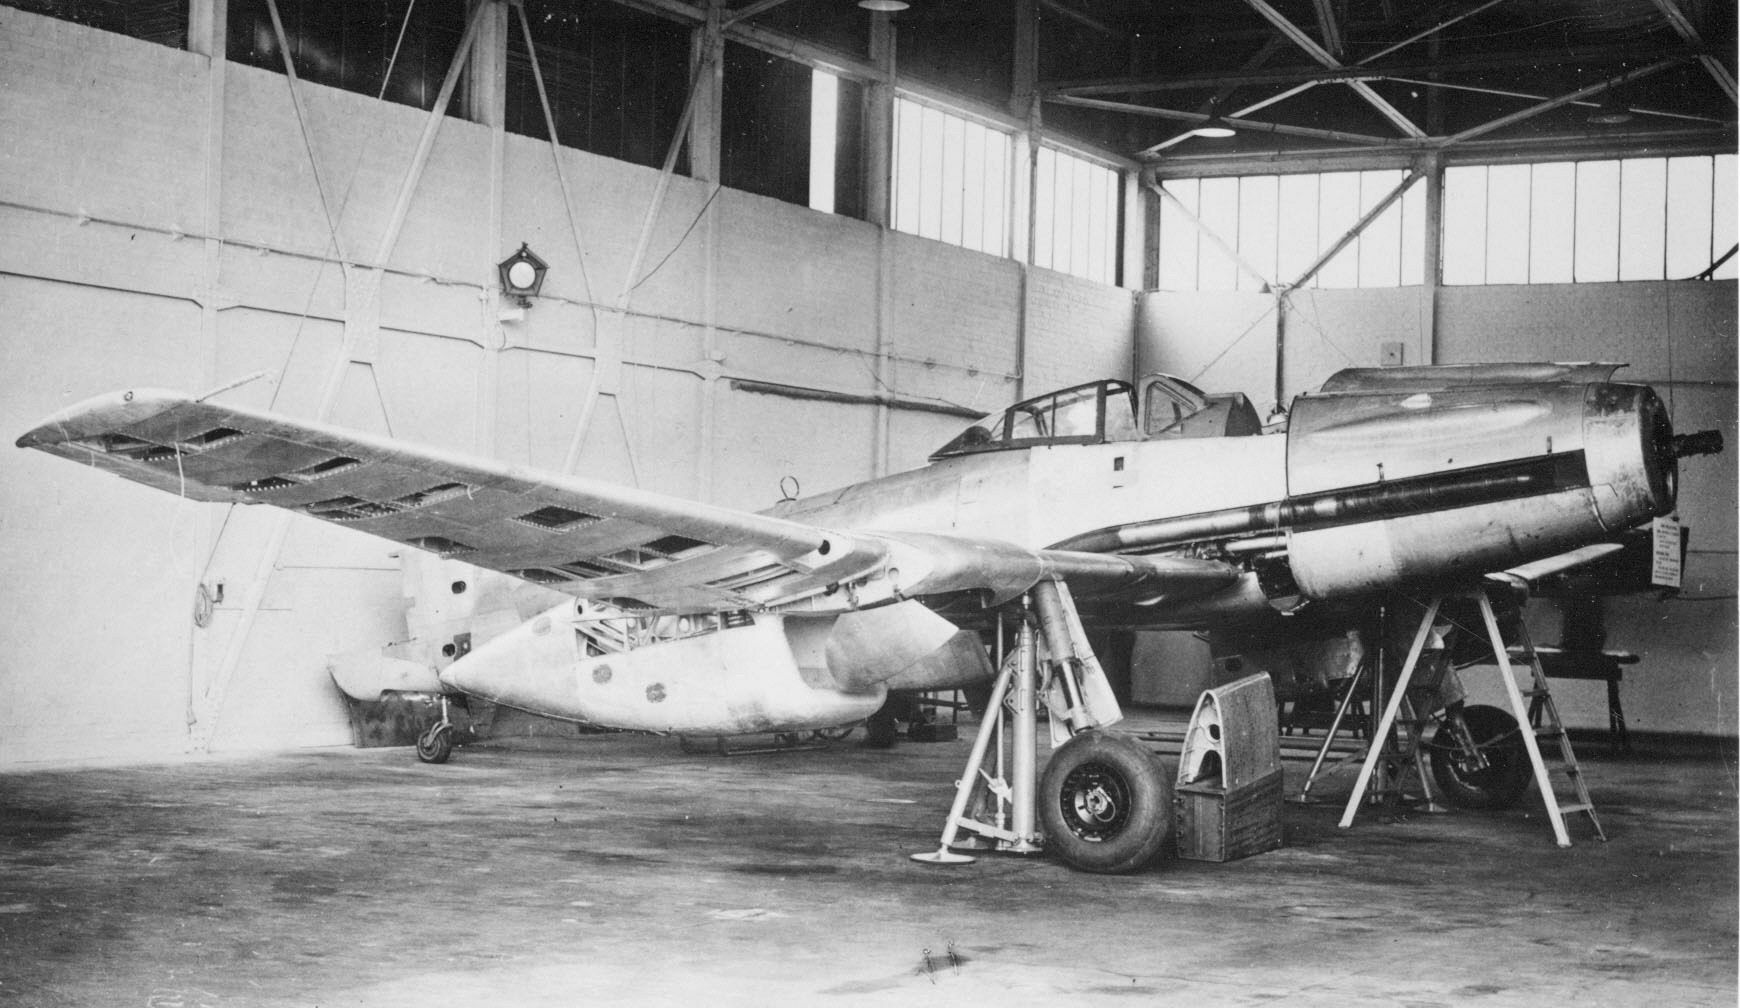 Blohm & Voss Bv 155 B- the Bv 155 V1 was flown for the first time on February 8, 1945, this test being abbreviated as a result of an alarming rise in the coolant temperature shortly after take-off. Second and third flights were made on February 10 and 28 respectively, and a second prototype, the Bv 155 V2, had joined the test program on February 15. the Bv 155 B V3  was shelved when seventy-five per cent complete in favor of the Bv 155 C V4,